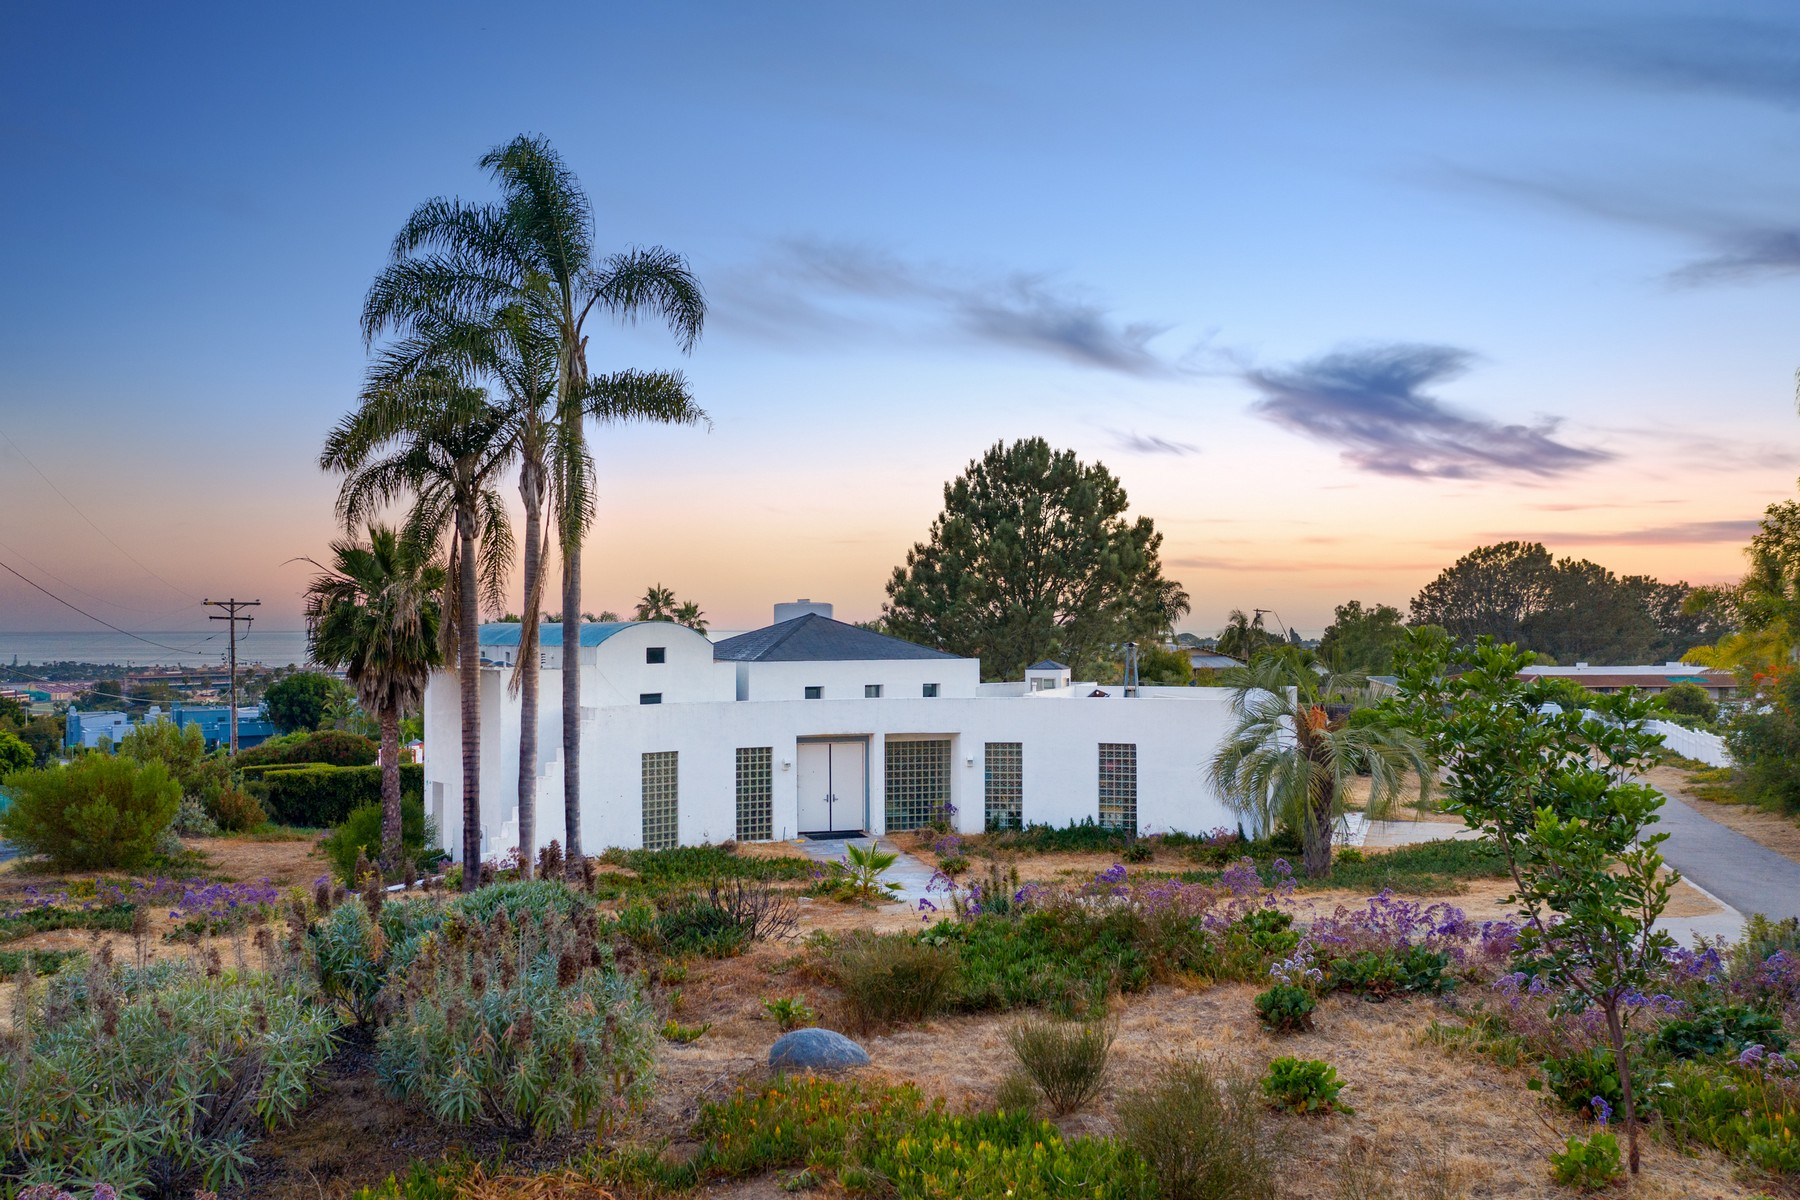 Single Family Homes for Sale at Avocado Point Acre 731 Avocado Place Del Mar, California 92014 United States